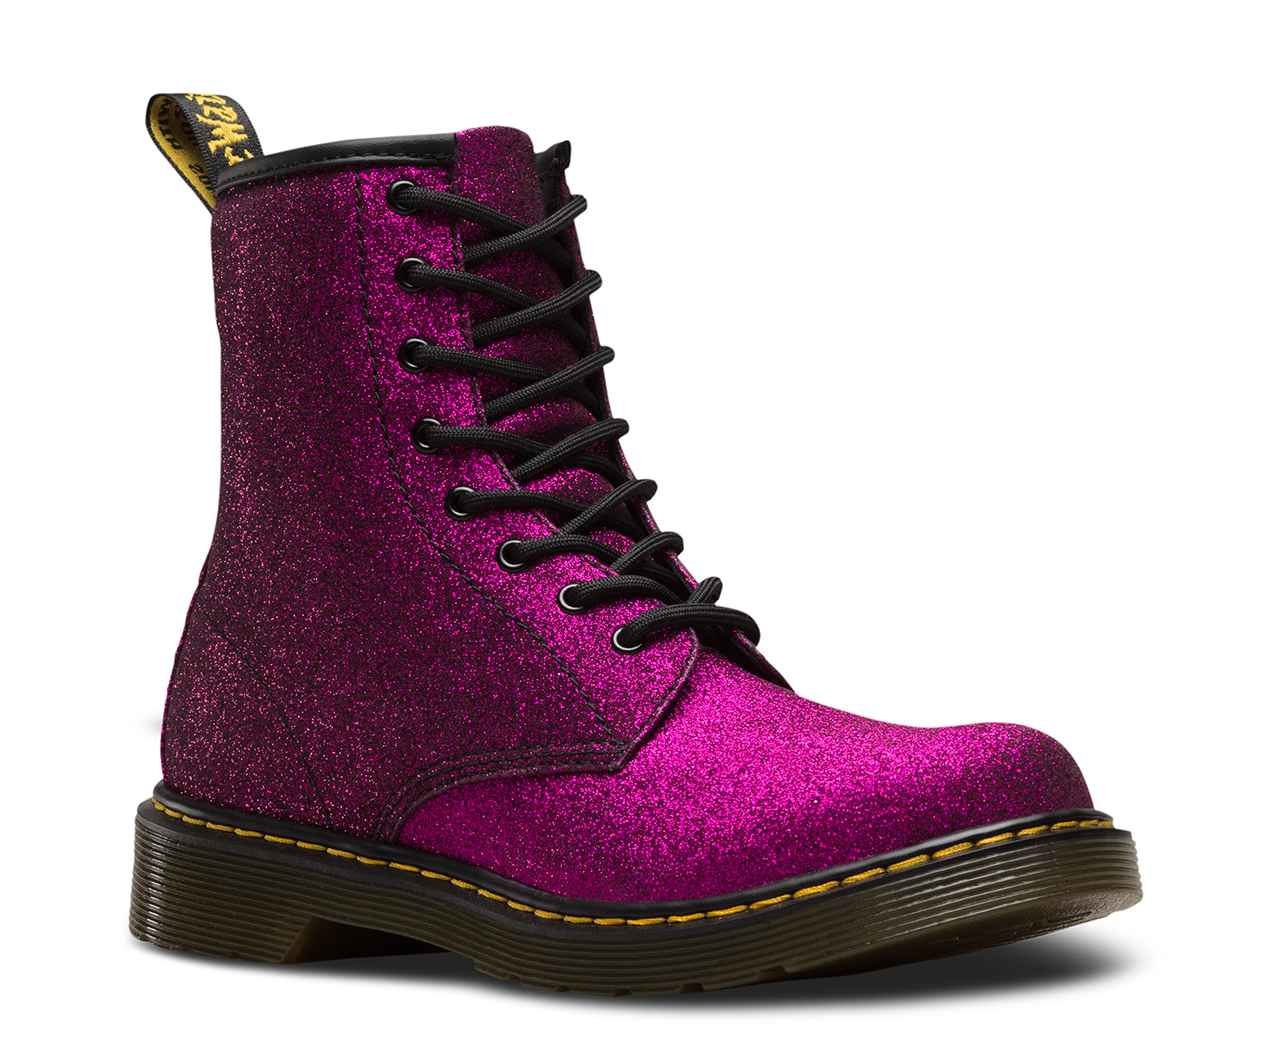 Clearance Supply From China Online Dr. Martens 1460 Glitter Boot Toddler(Infant/Toddler Girls') -Dark Pink Coated Glitter Free Shipping Footaction Free Shipping Factory Outlet Huge Surprise Online y6o2y4YSk